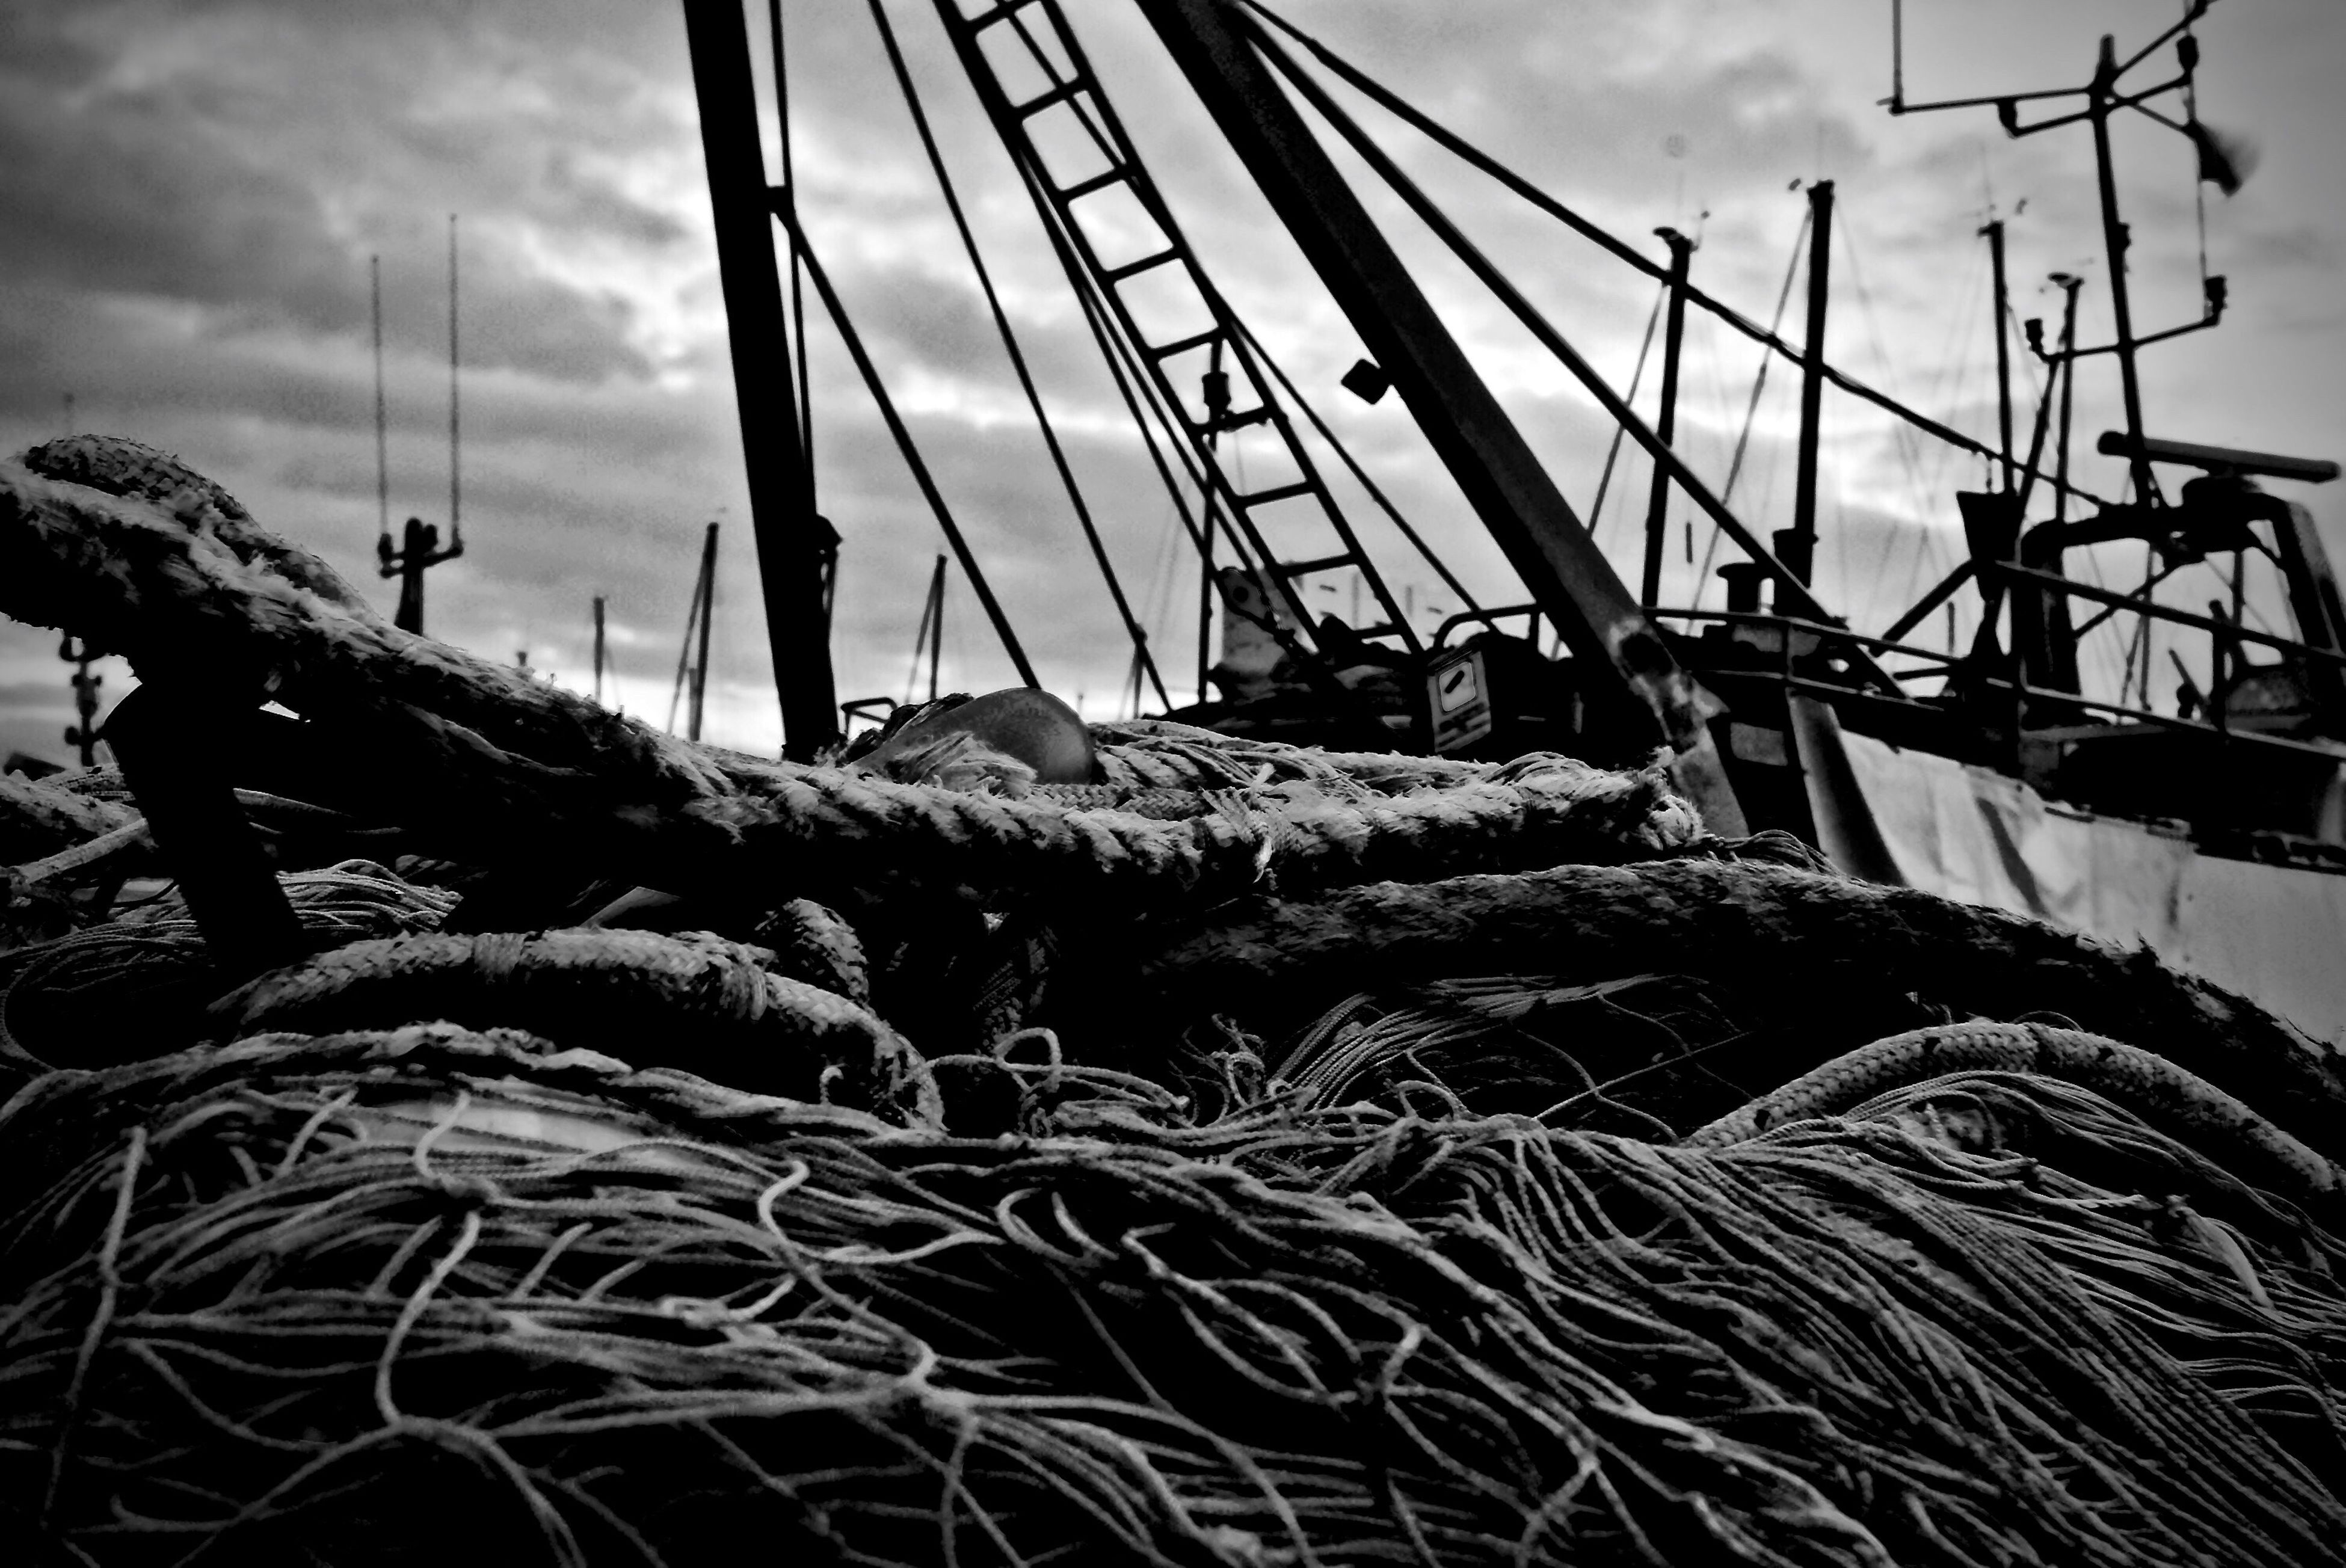 sky, transportation, cloud - sky, nautical vessel, nature, outdoors, sea, day, fishing net, water, beach, no people, harbor, beauty in nature, rigging, close-up